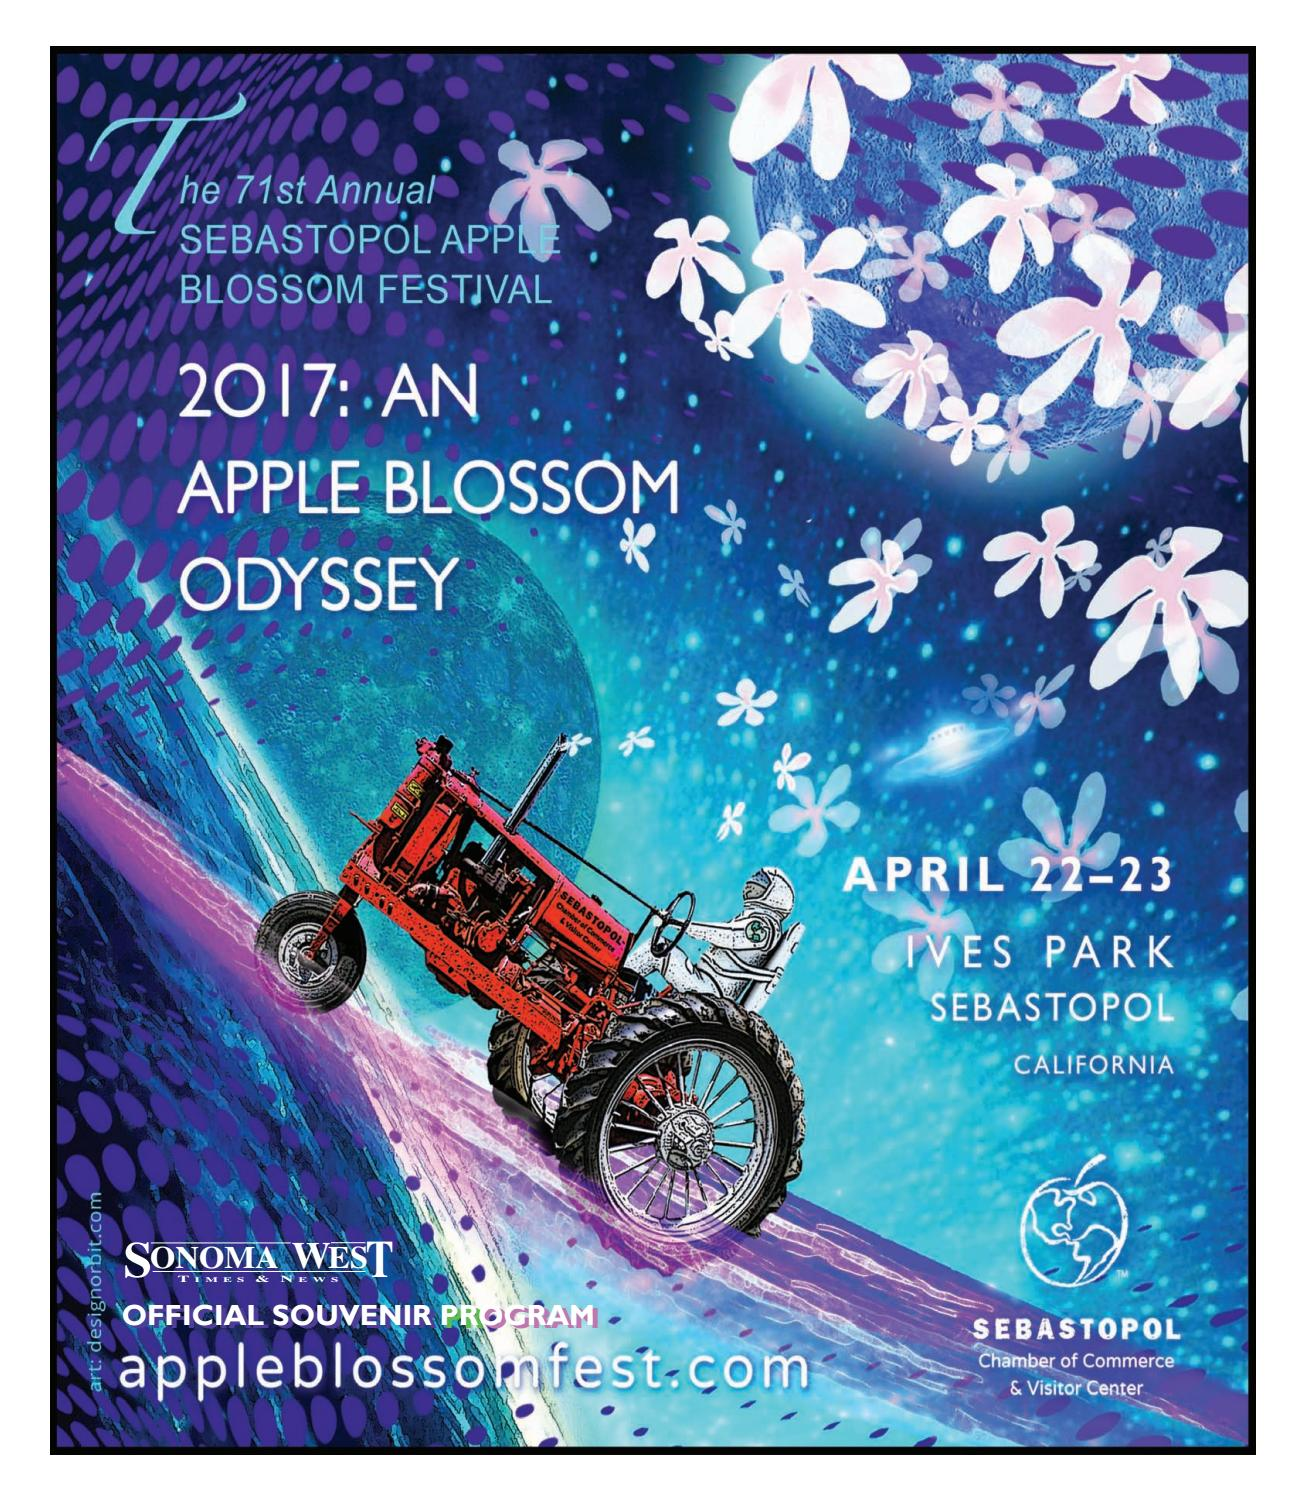 Apple blossom festival 2017layout by Sonoma West Publishers - issuu